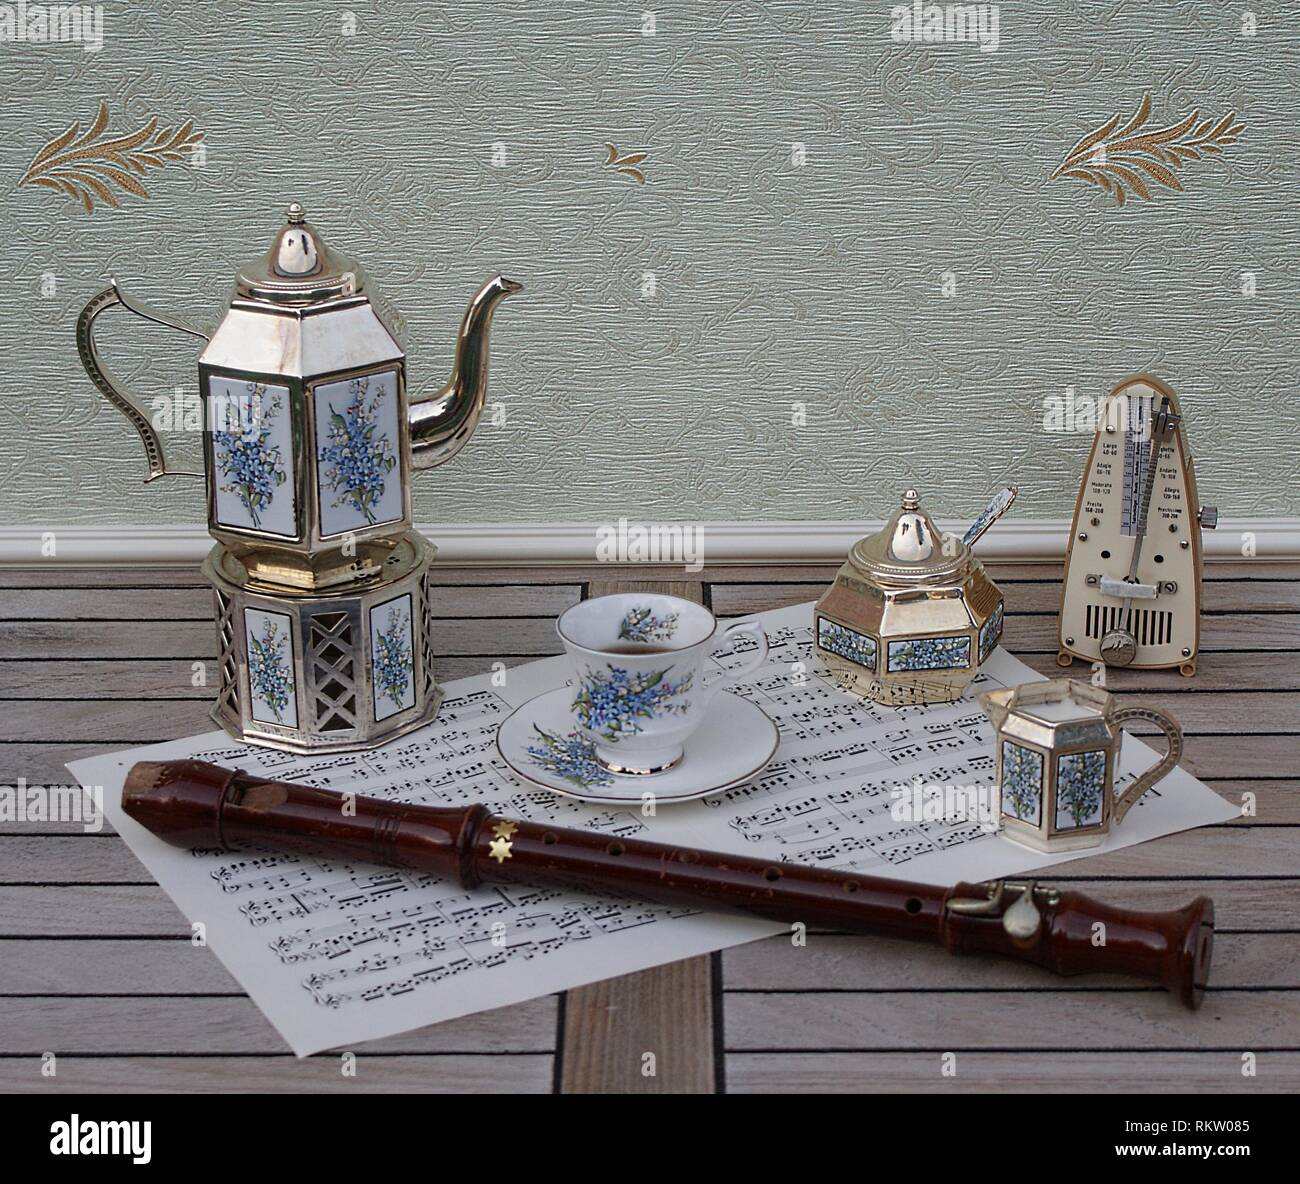 English teacup, silver-plated teapot, a stove, cream jug, sugar bowl and sugar spoon and metronome for music and a block flute on a sheet of music - Stock Image